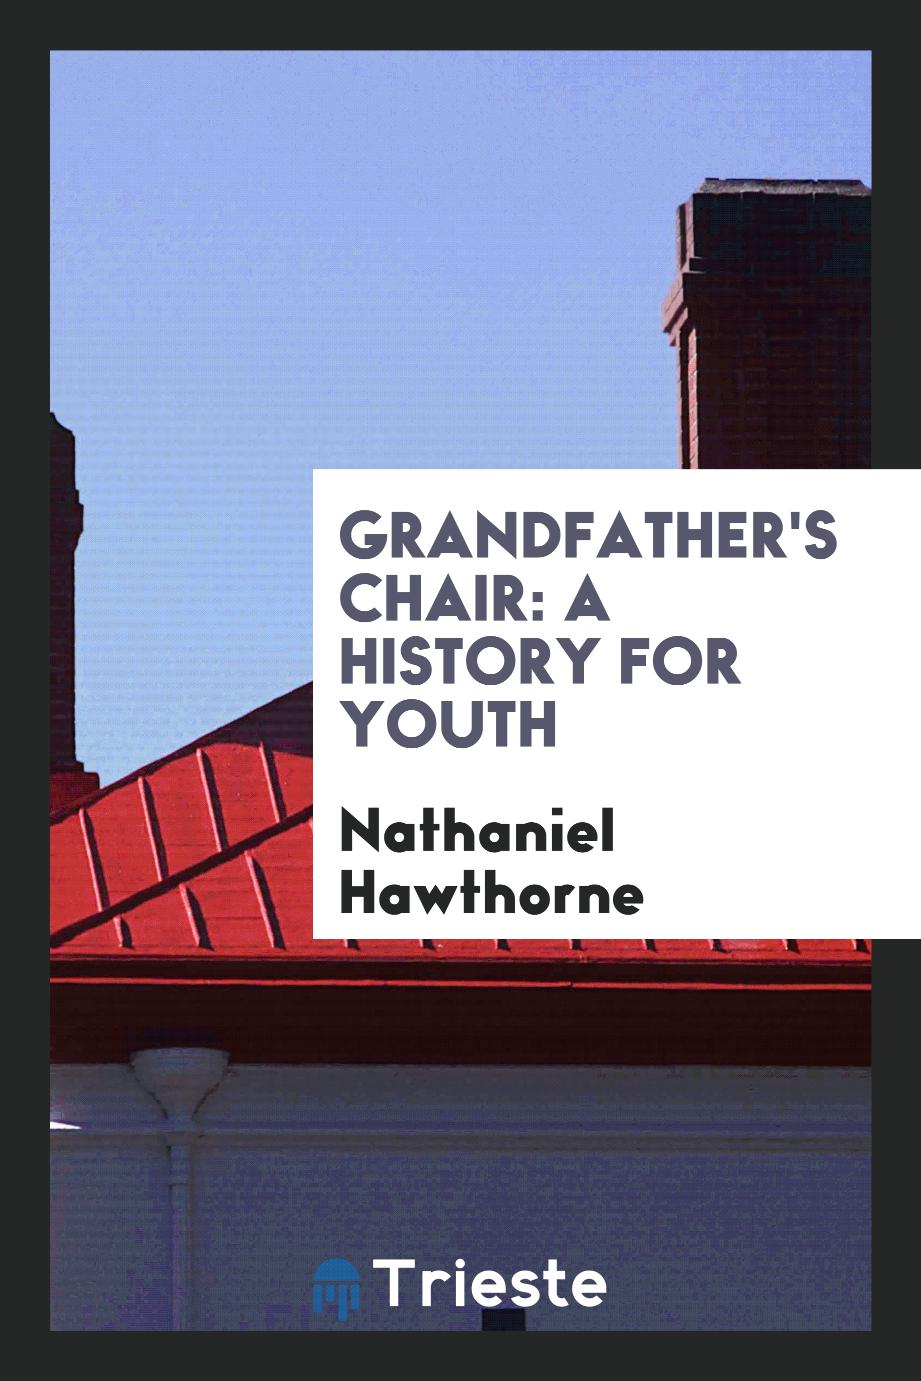 Grandfather's Chair: A History for Youth